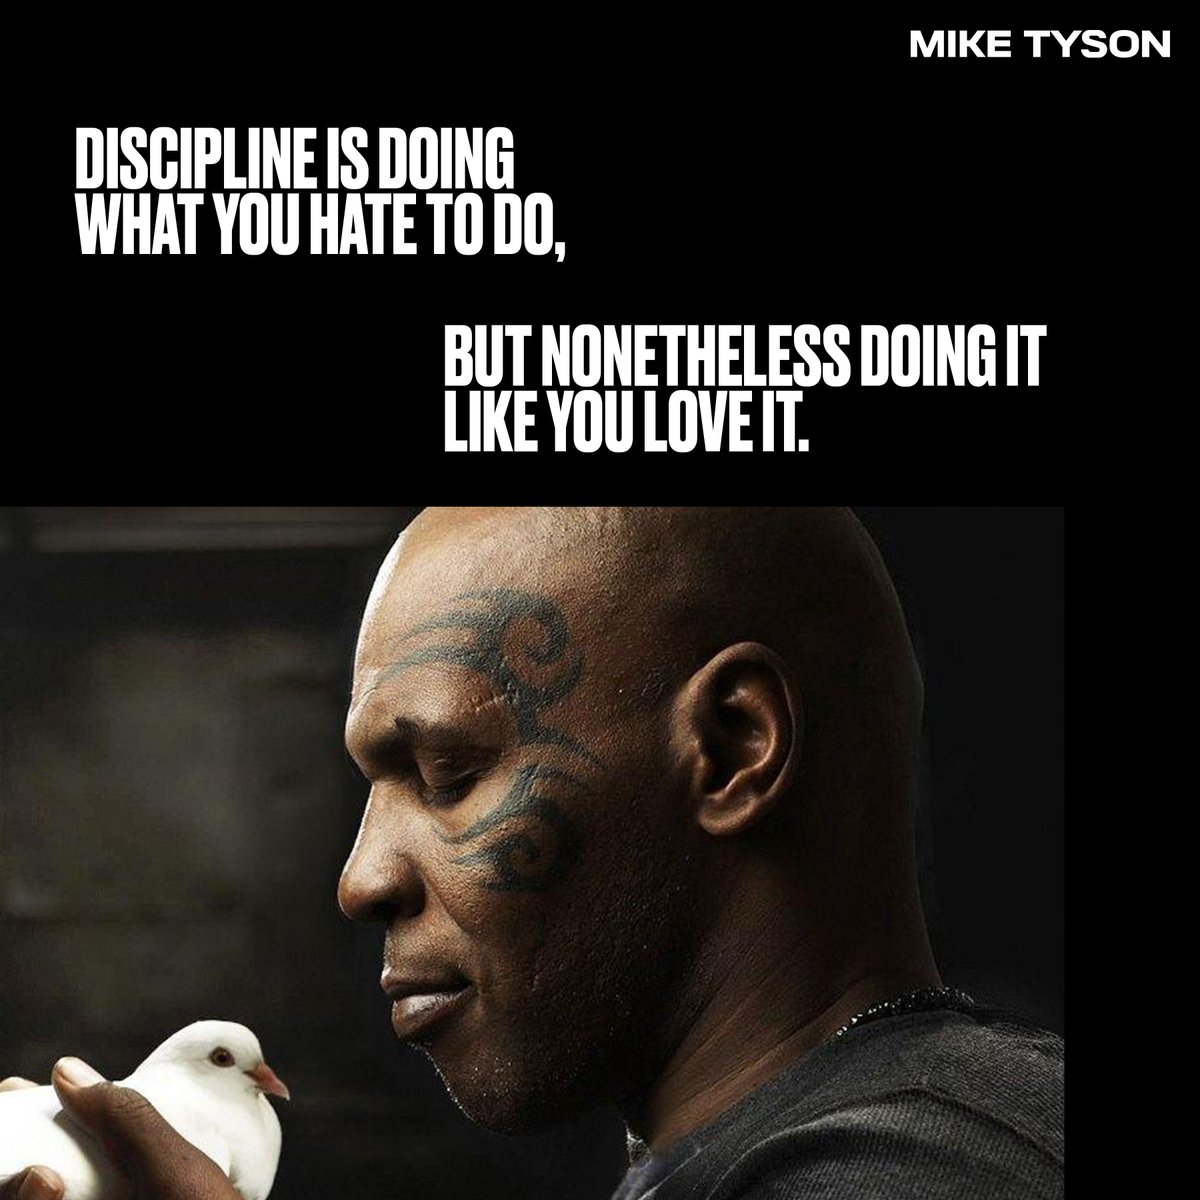 Discipline is doing what you hate to do, but nonetheless doing it like you love it. #miketyson https://t.co/zCih79COZE